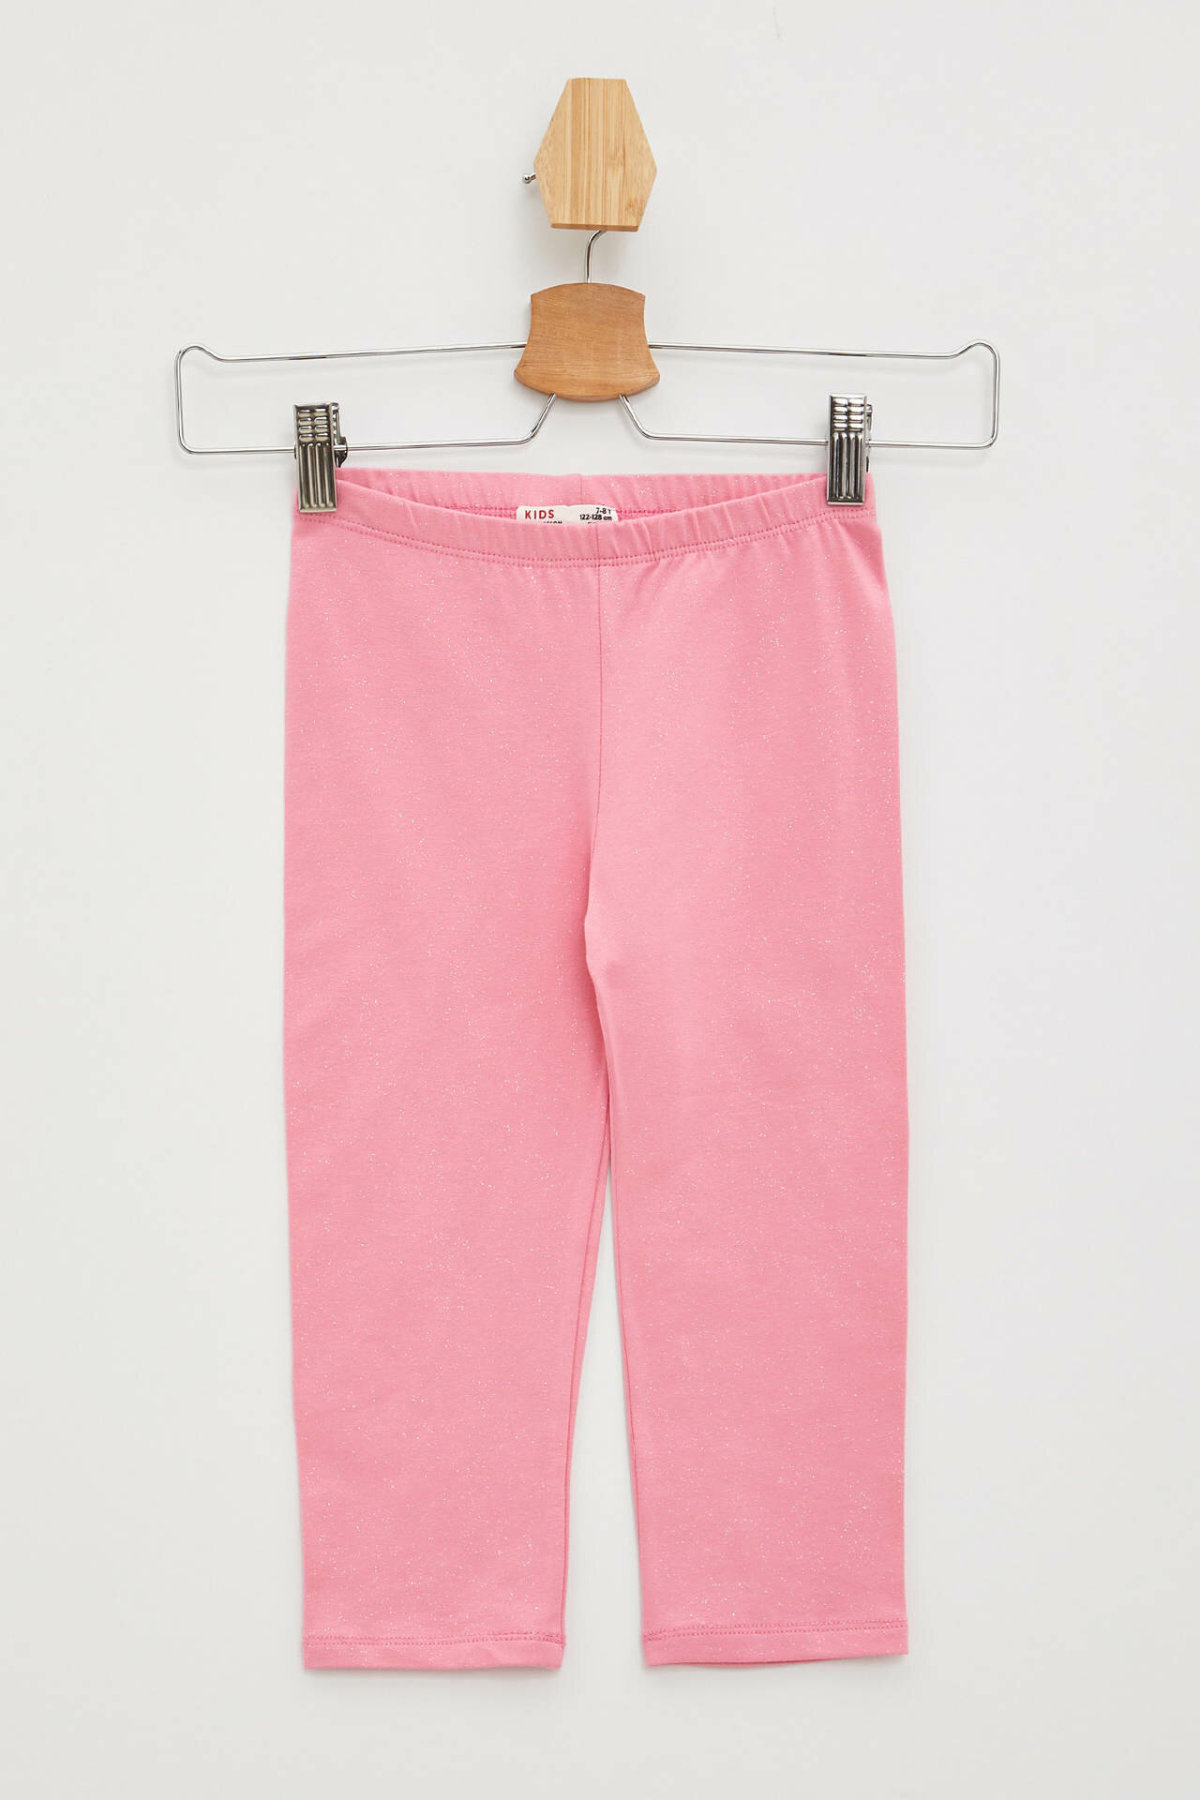 DeFacto Fashion Girl Leggings Kids Casual Elastic Waist Long Pants High Quality Girls Comfortable Pants Pink - K8053A619SM